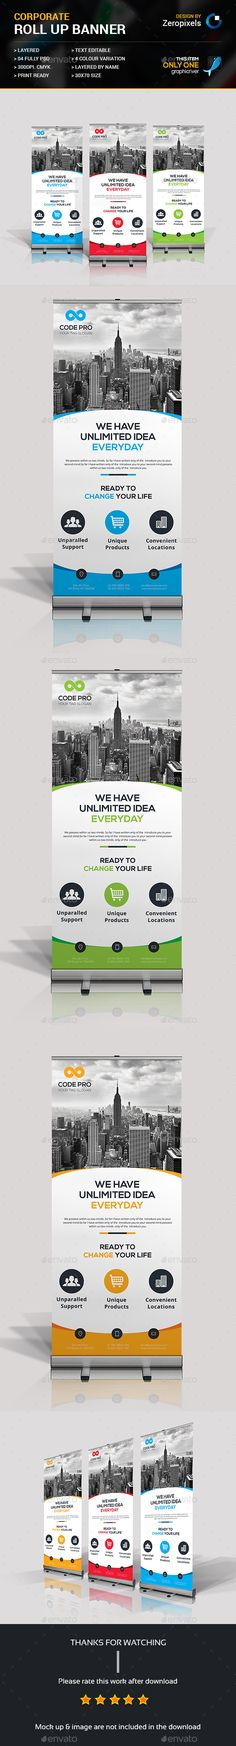 Corporate Roll-up Banner Banner vector, Signage and Banners - purchase order template open office